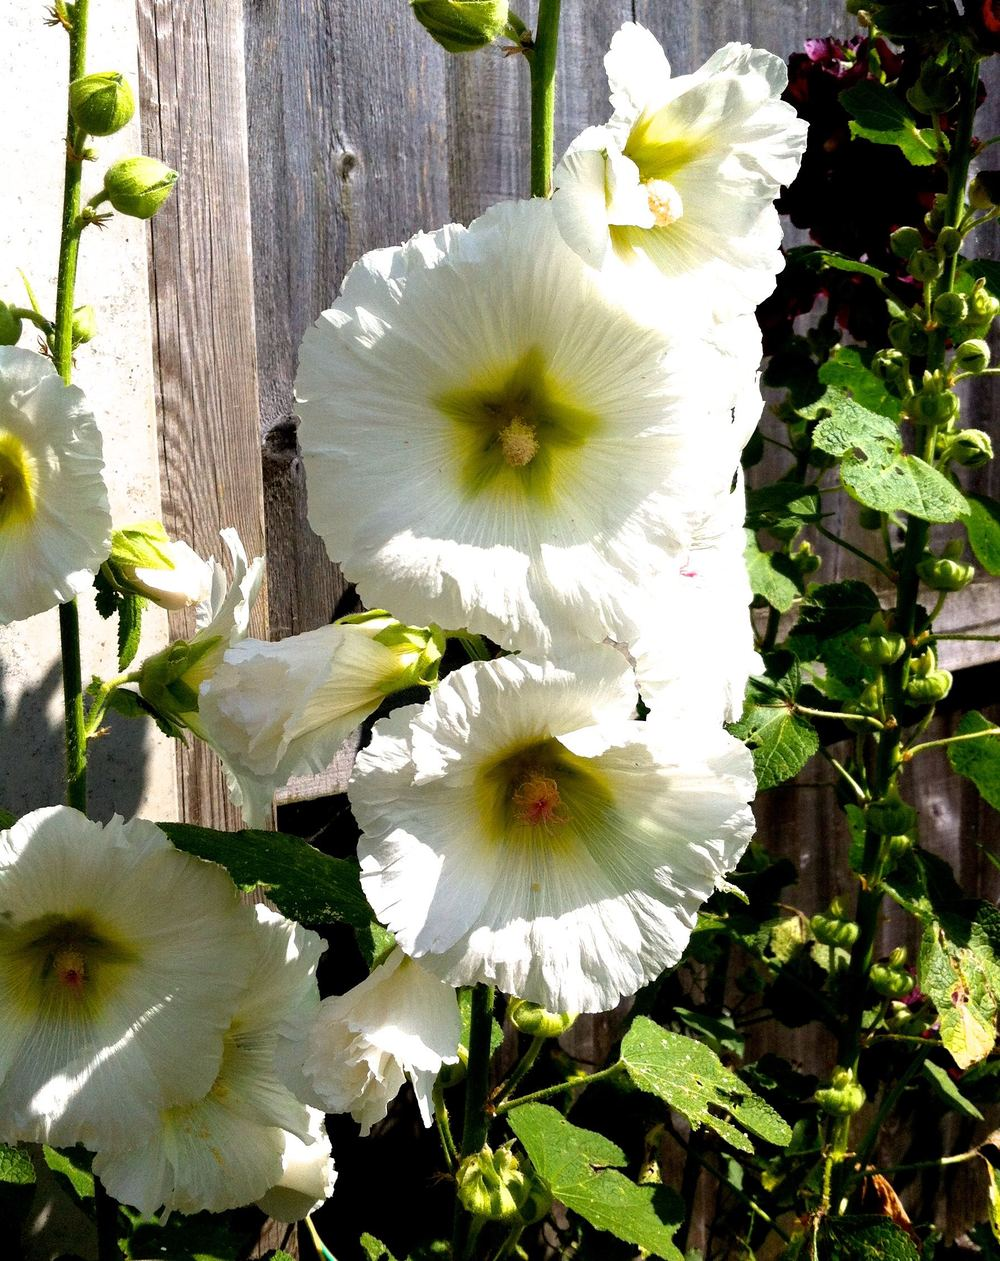 hollyhocks galore in dads garden right now - there's white ones